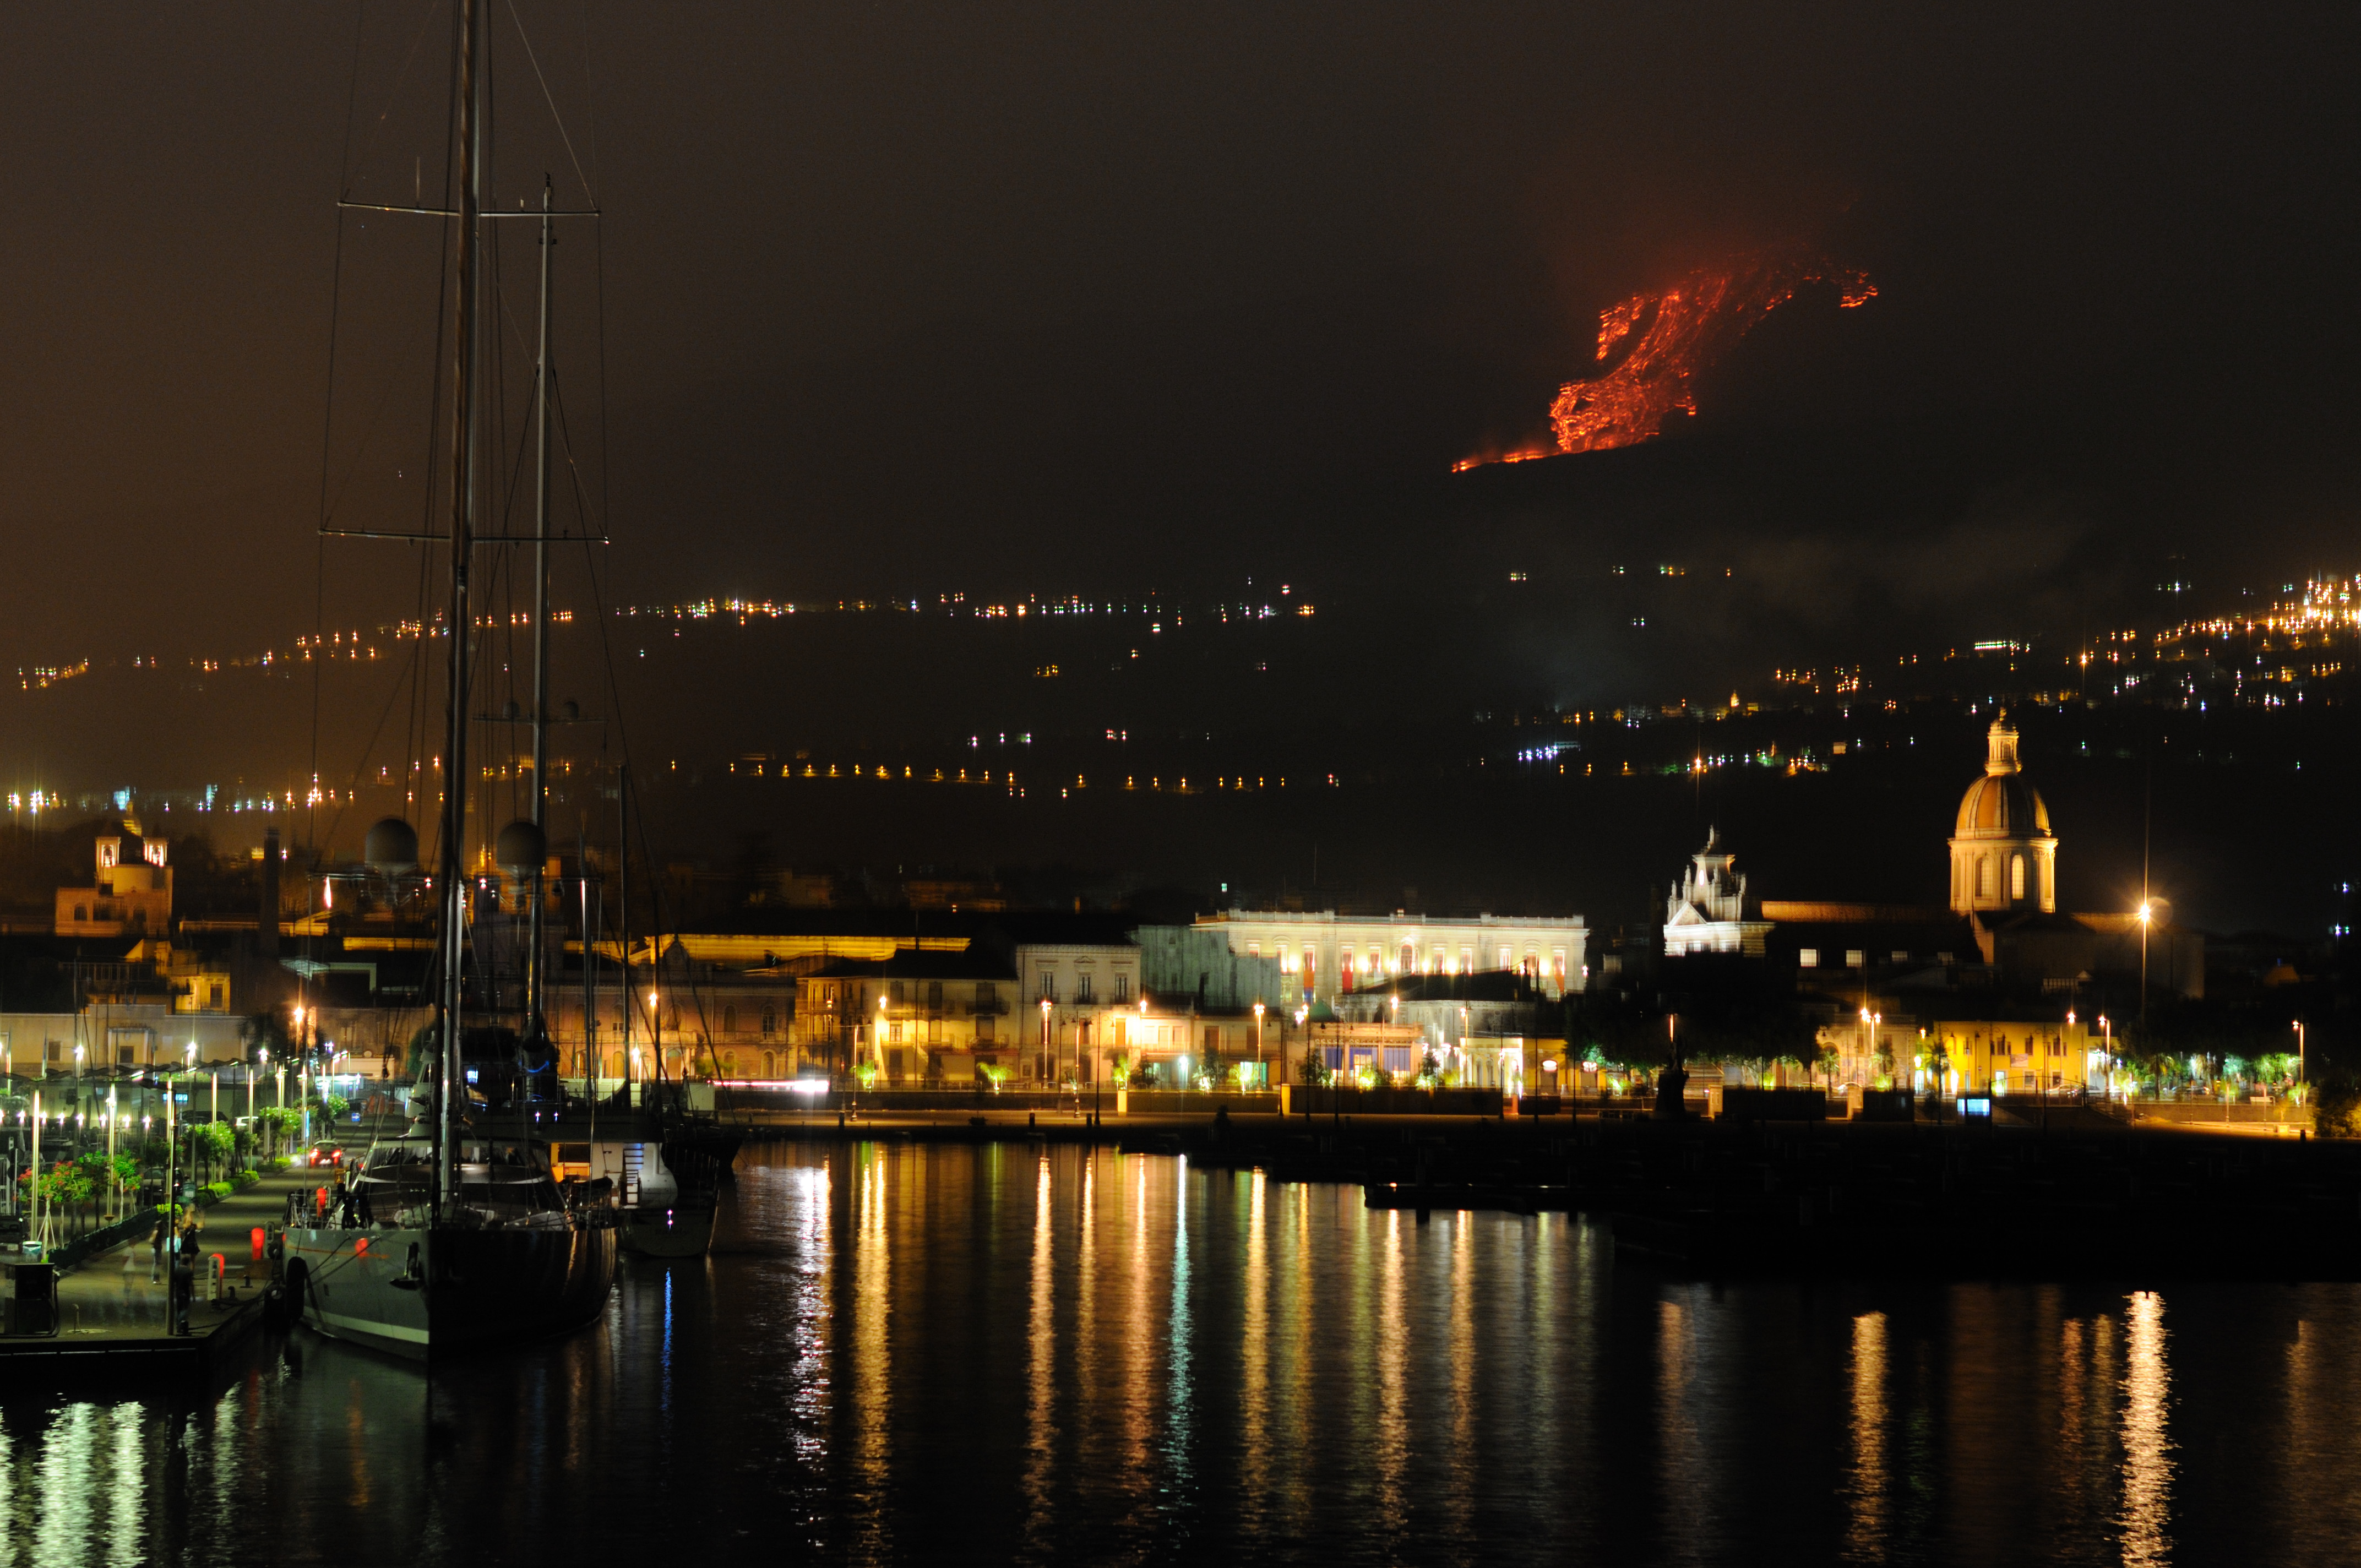 Etna volcano paroxysmal eruption july 30 2011 - creative commons by gnuckx photo